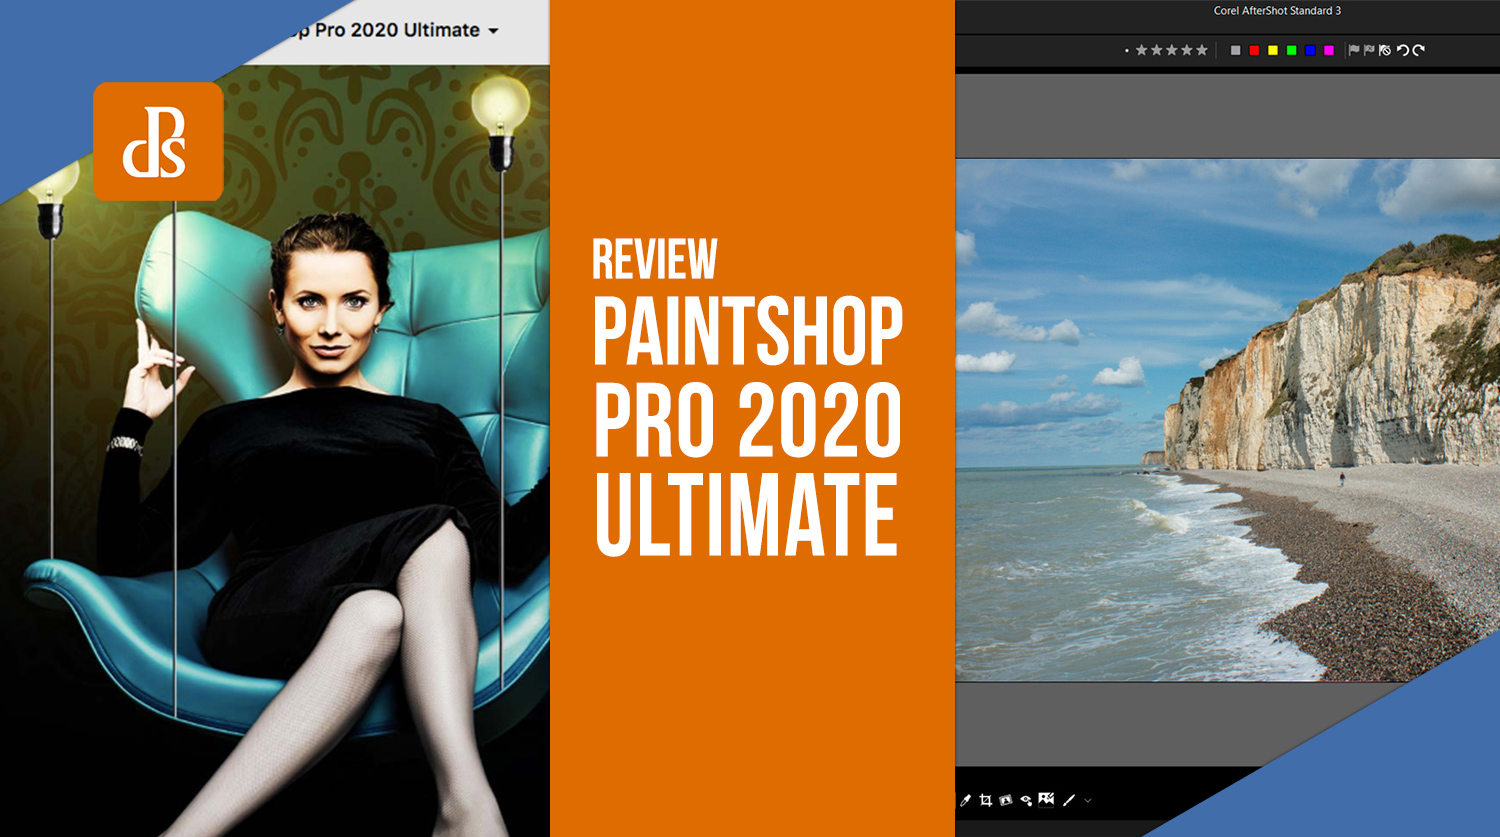 Corel Paintshop Pro 2020 Review.Review Of Paintshop Pro 2020 Ultimate A Photoshop Contender